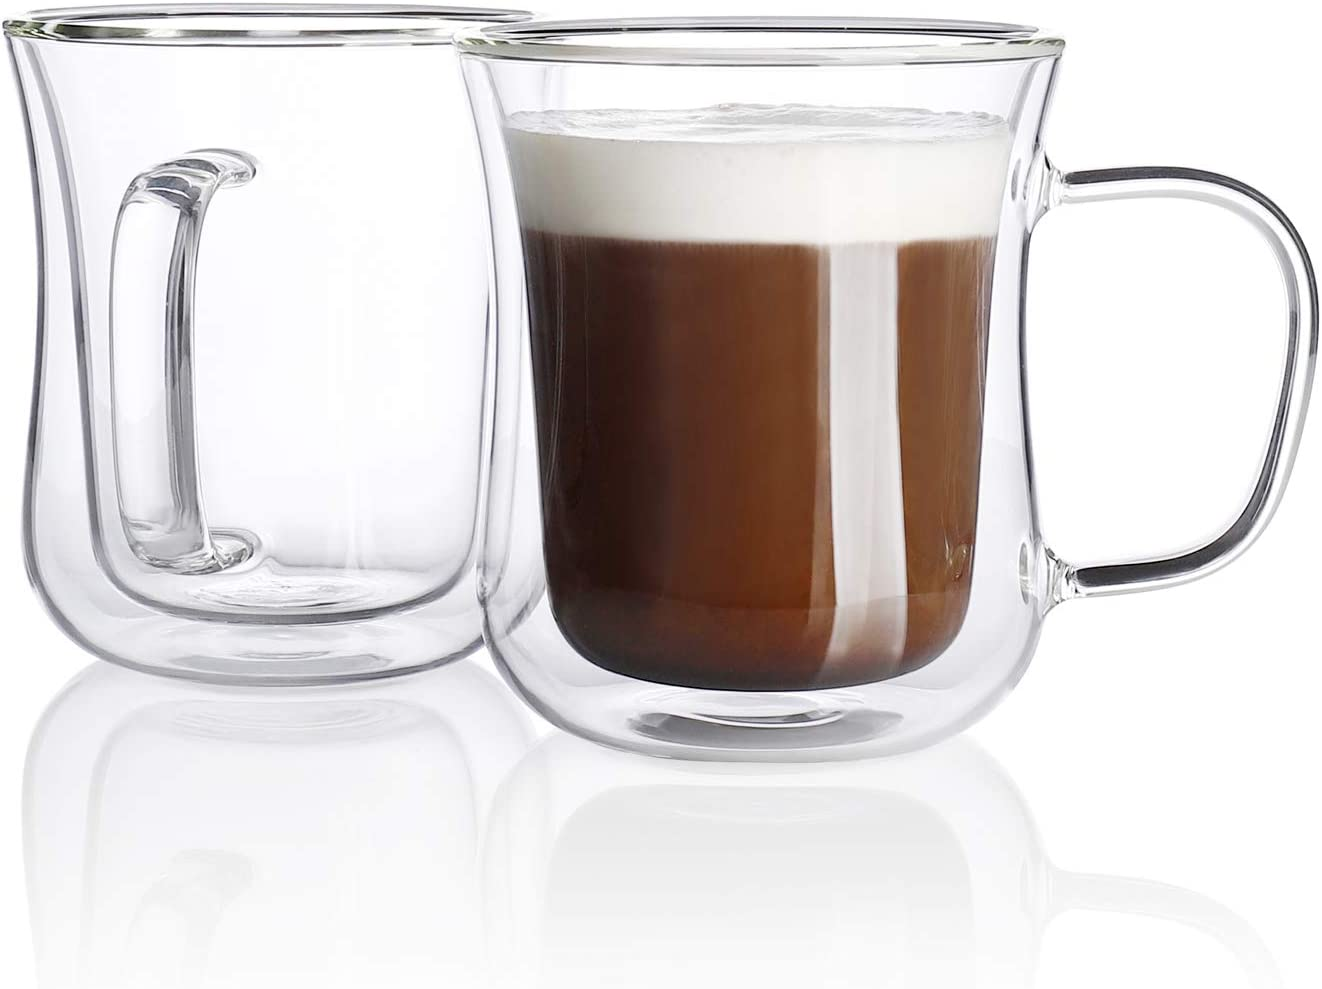 Sweese 420.101 Double Wall Espresso Cups Glass Coffee Cups Insulated Cups for Tea Latte Cappuccino Espresso (7.5oz)